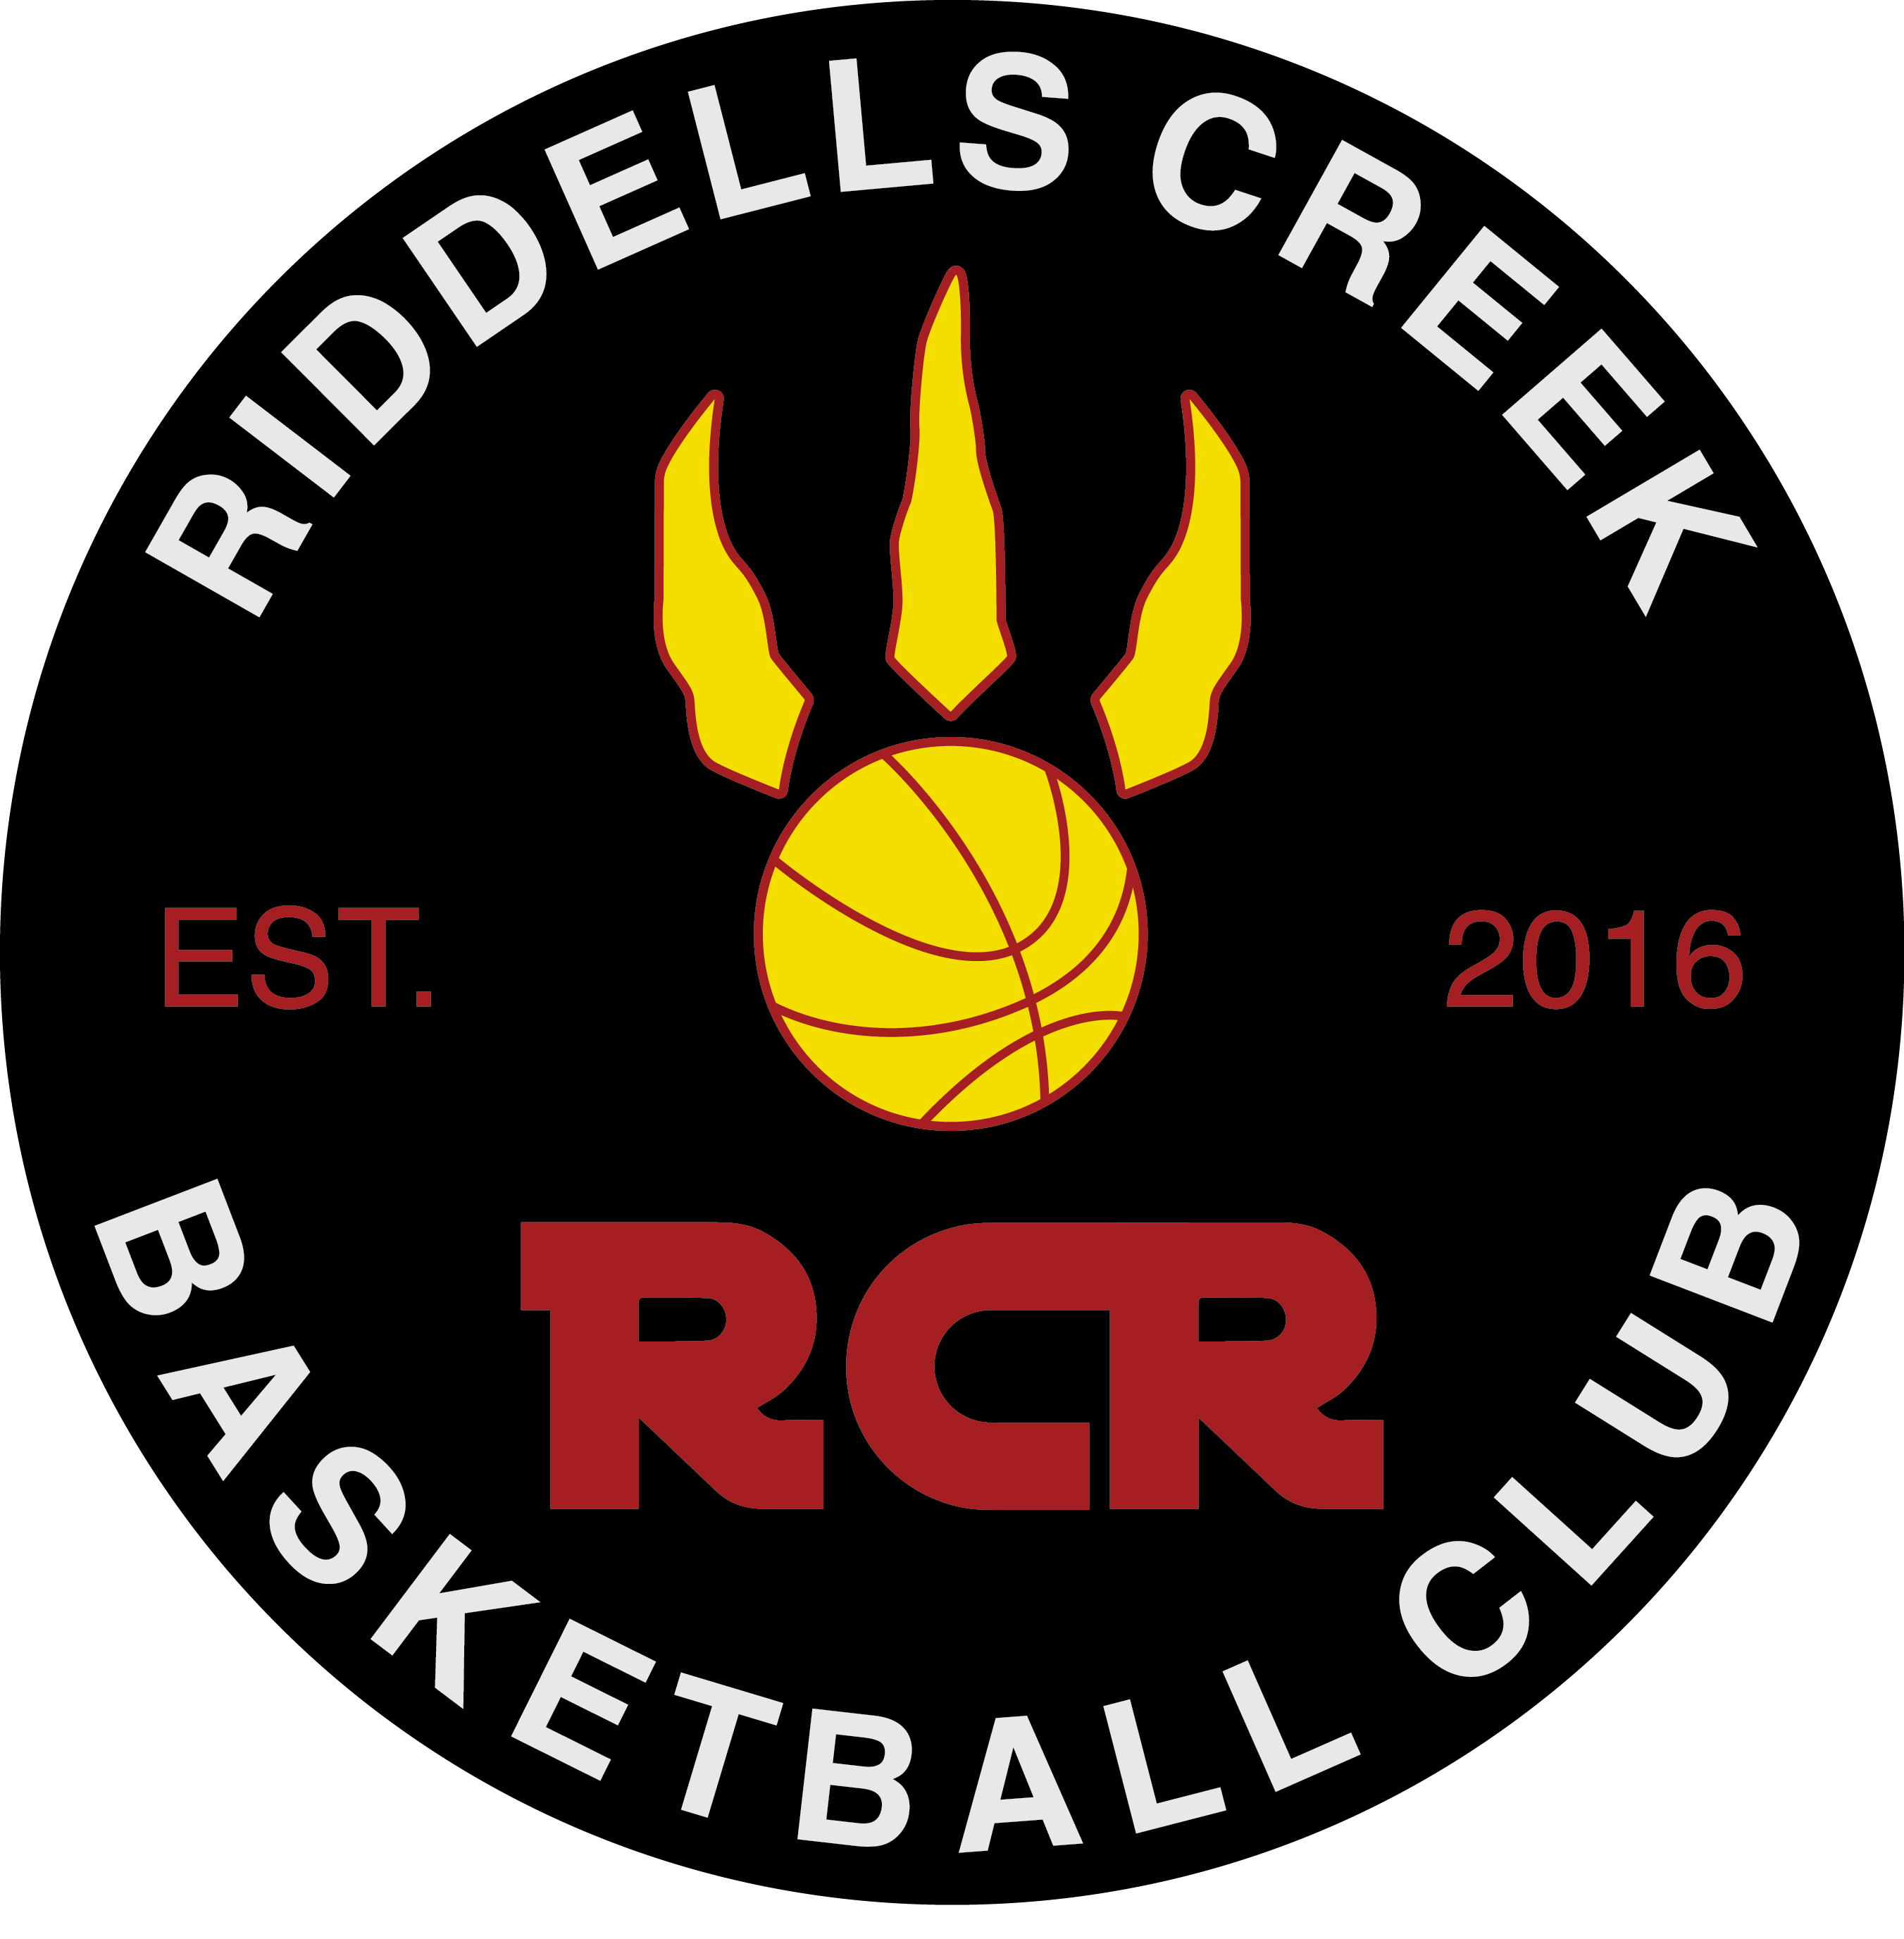 Riddells Creek Basketball Club Logo